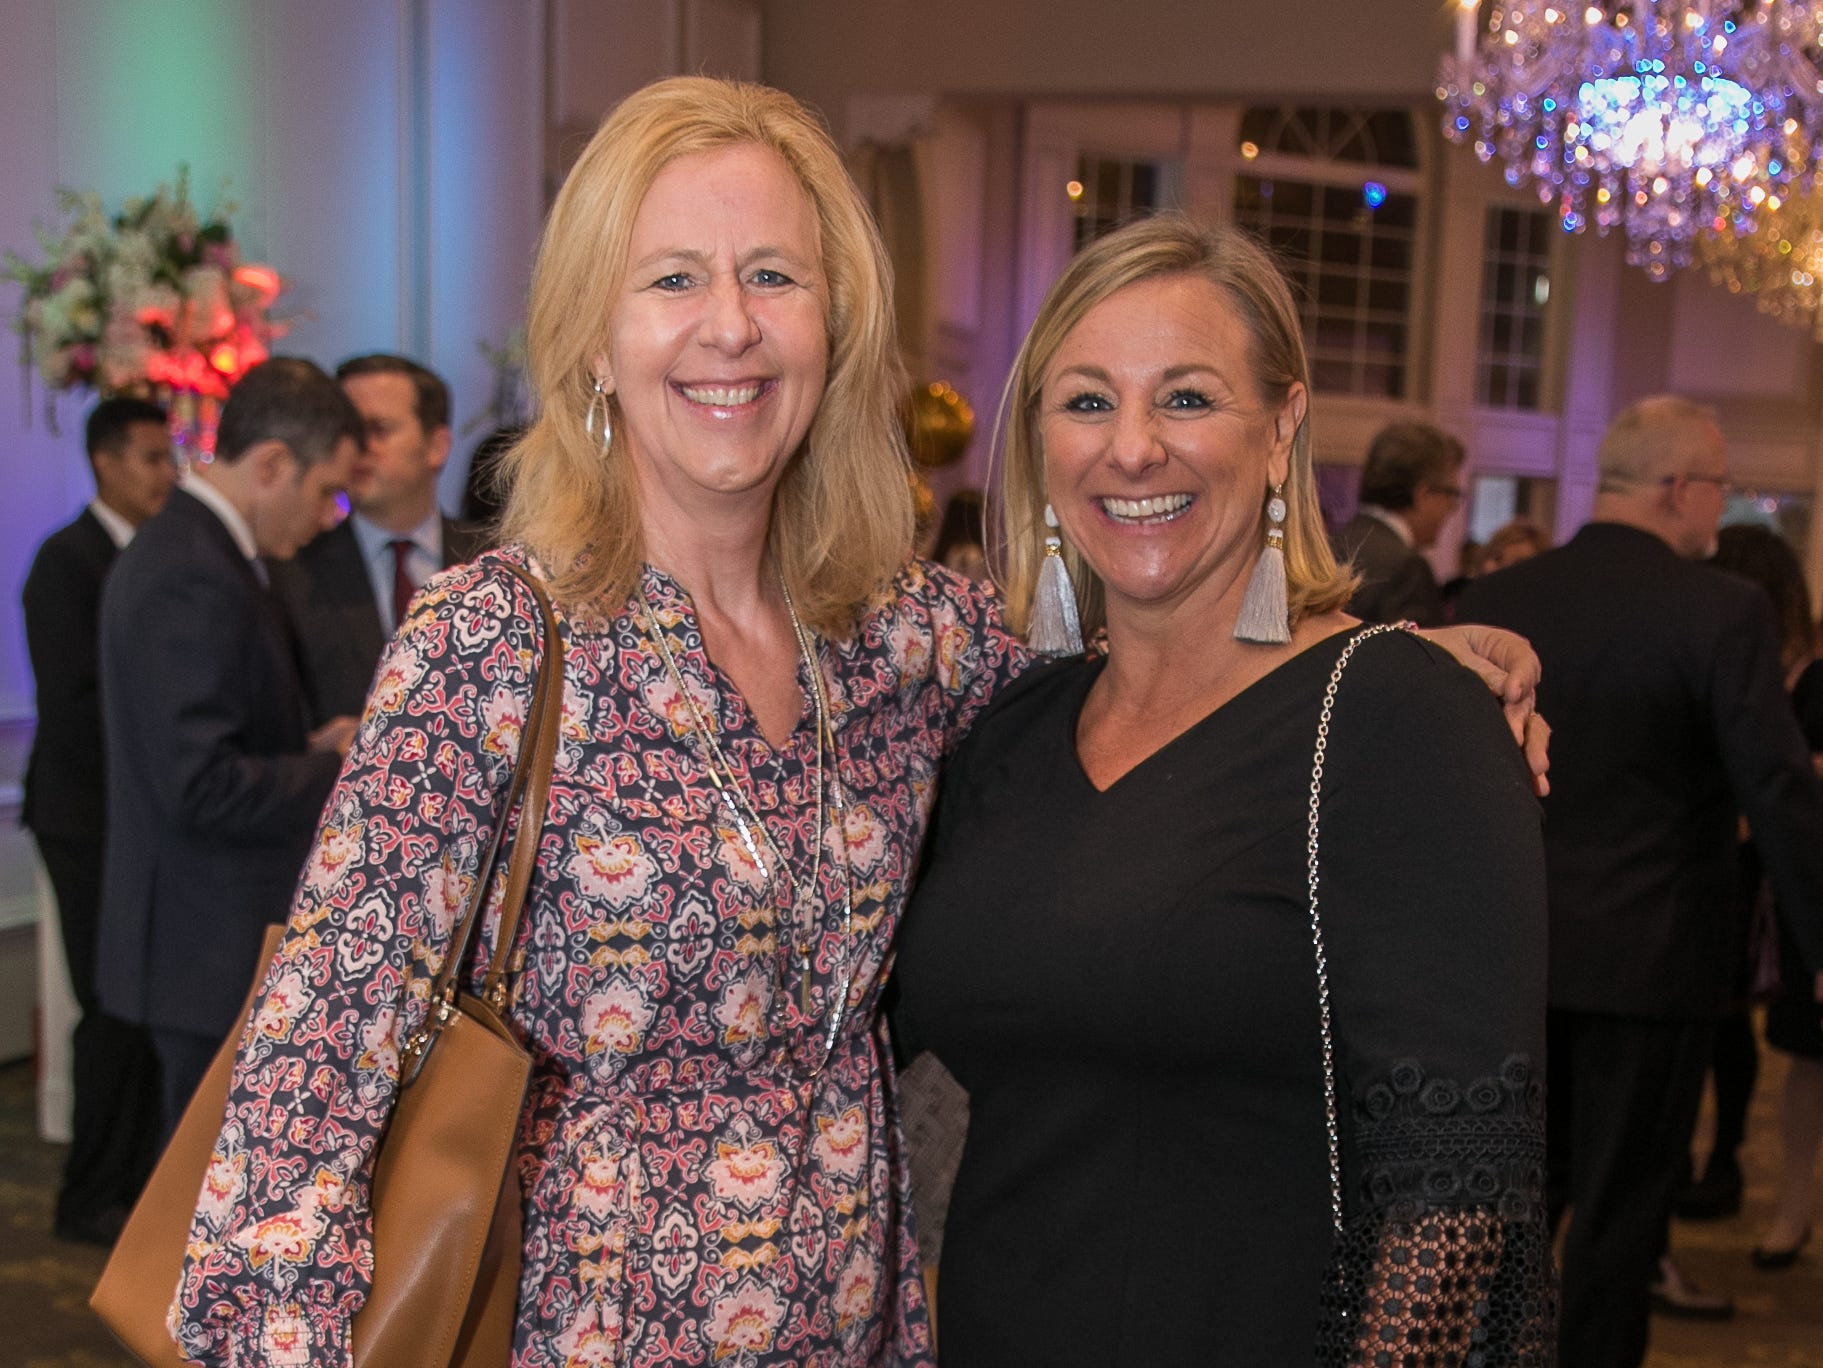 Mary Lynch, Chrissy Croonquist. Bergen Family Center celebrated 120 years of service with dinner and a silent auction at Th e Rockleigh Country Club.11/1/2018